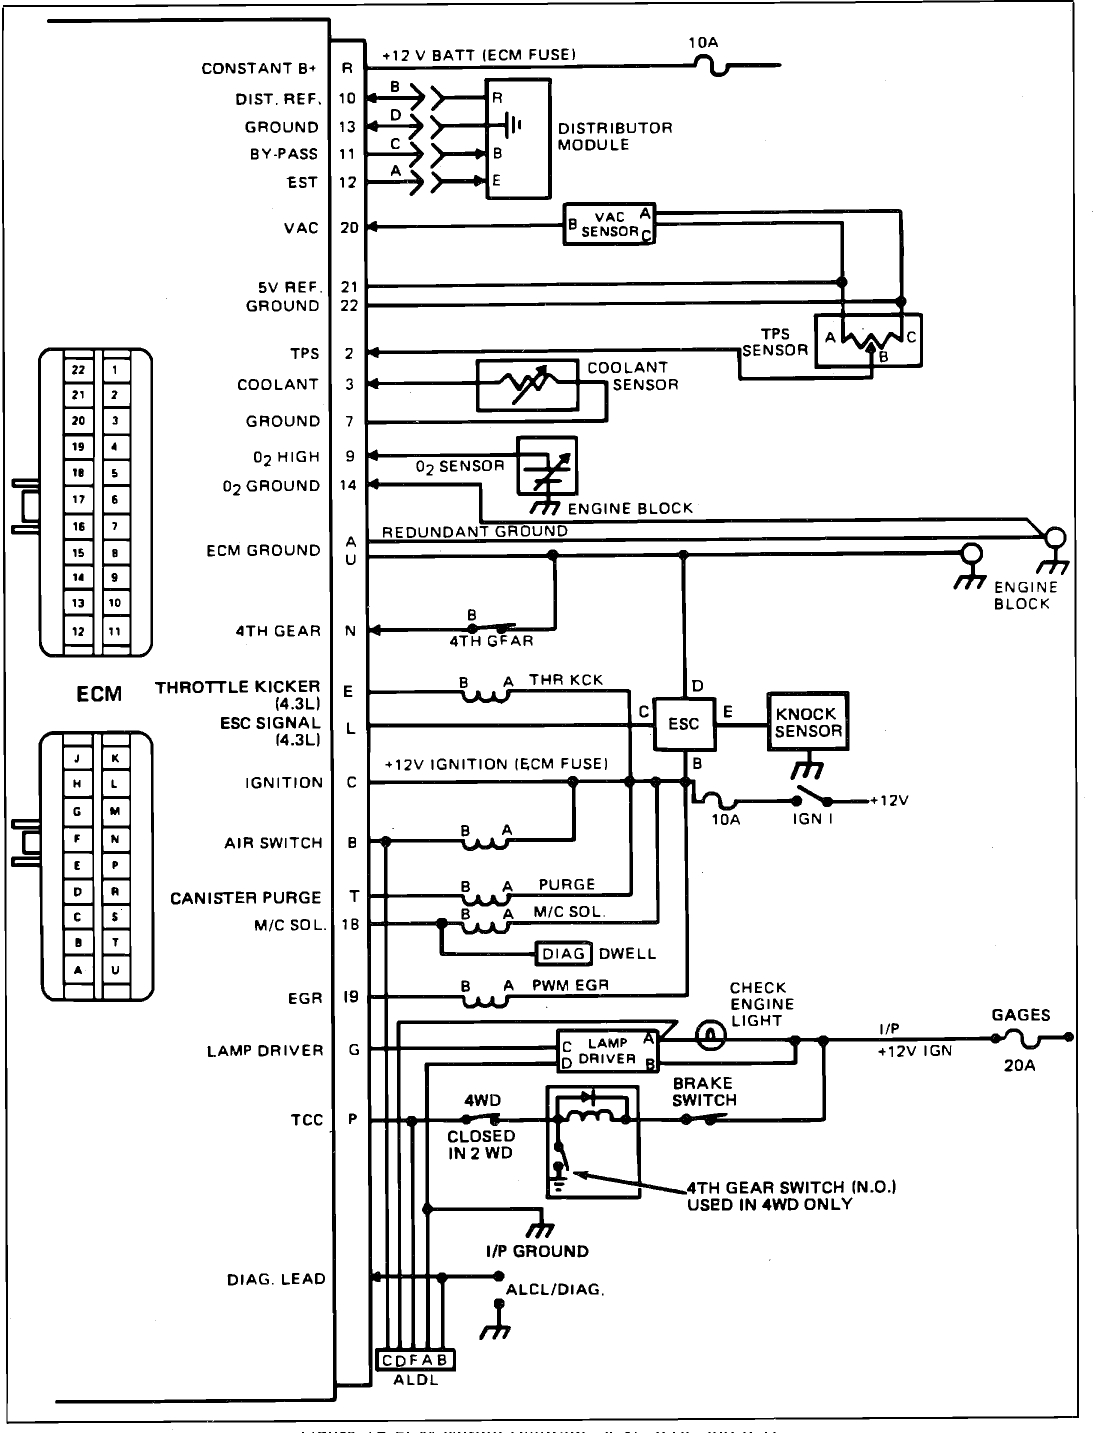 1992 Chevrolet G Van Wiring Diagram Will Be A Thing Chevy I Need Fuse Box With Colors Rh 2carpros Com Silverado